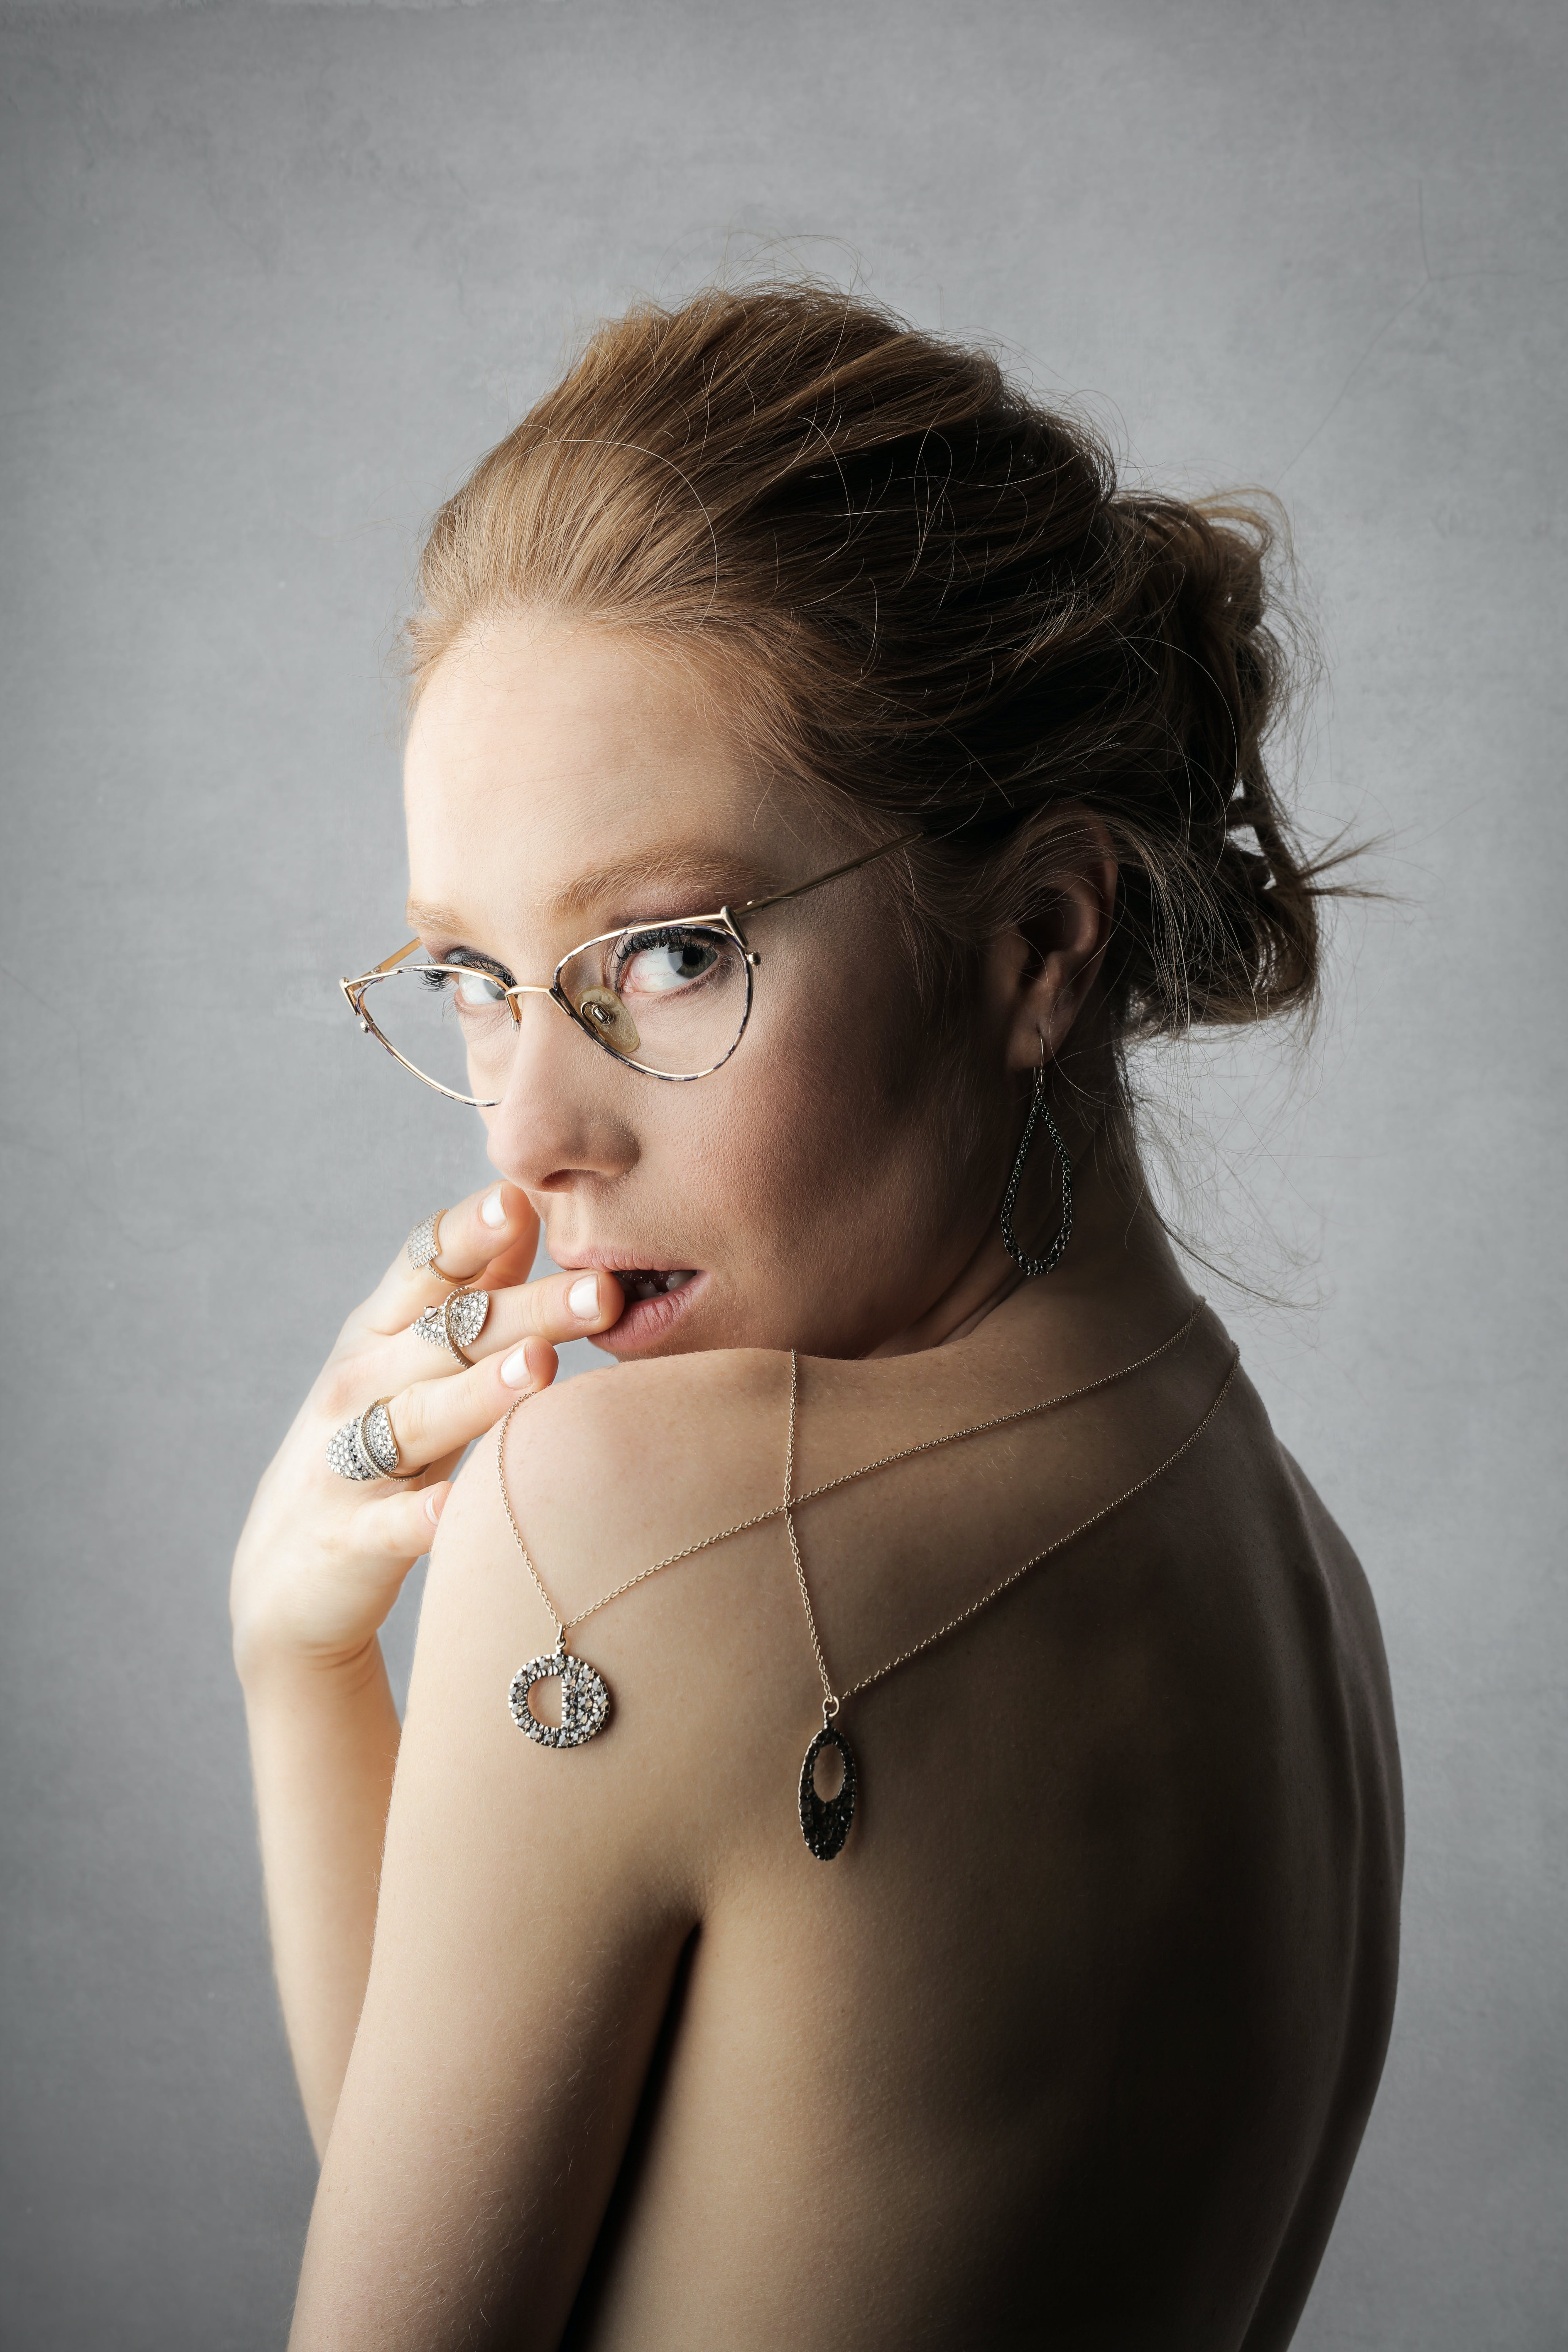 Woman Wearing Gold-colored Framed Eyeglasses